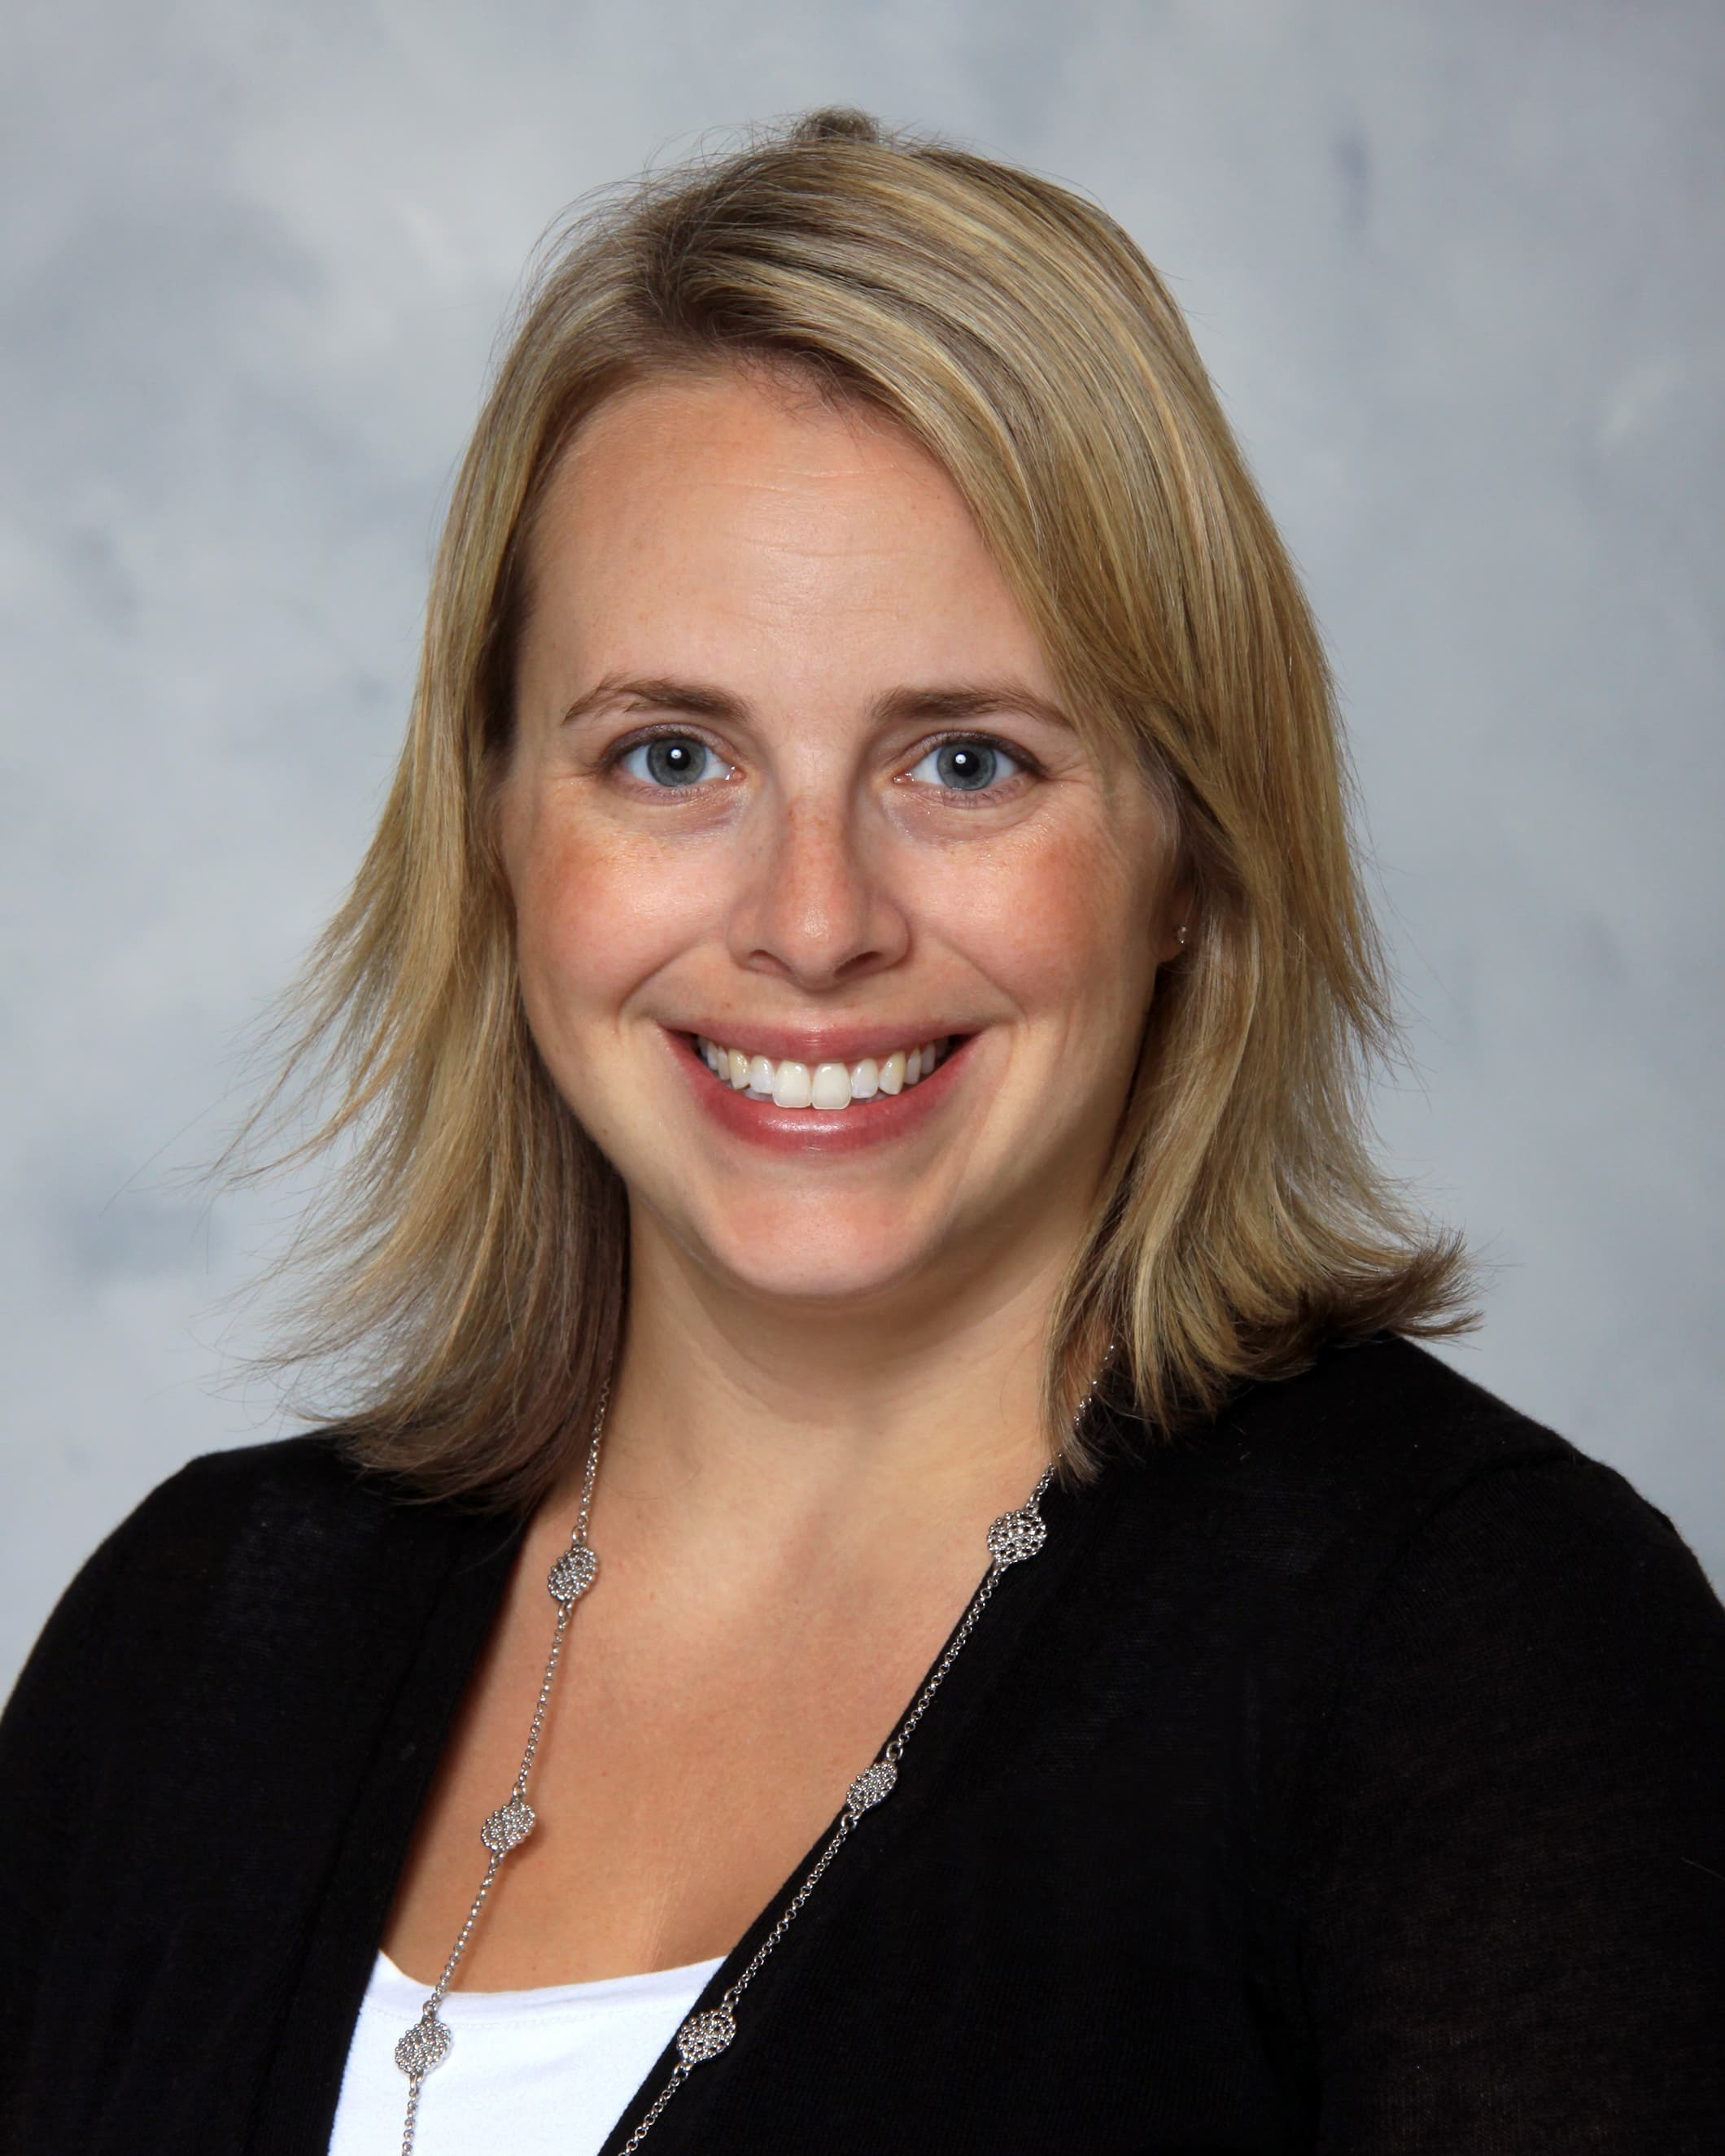 Danielle M Erney, MD